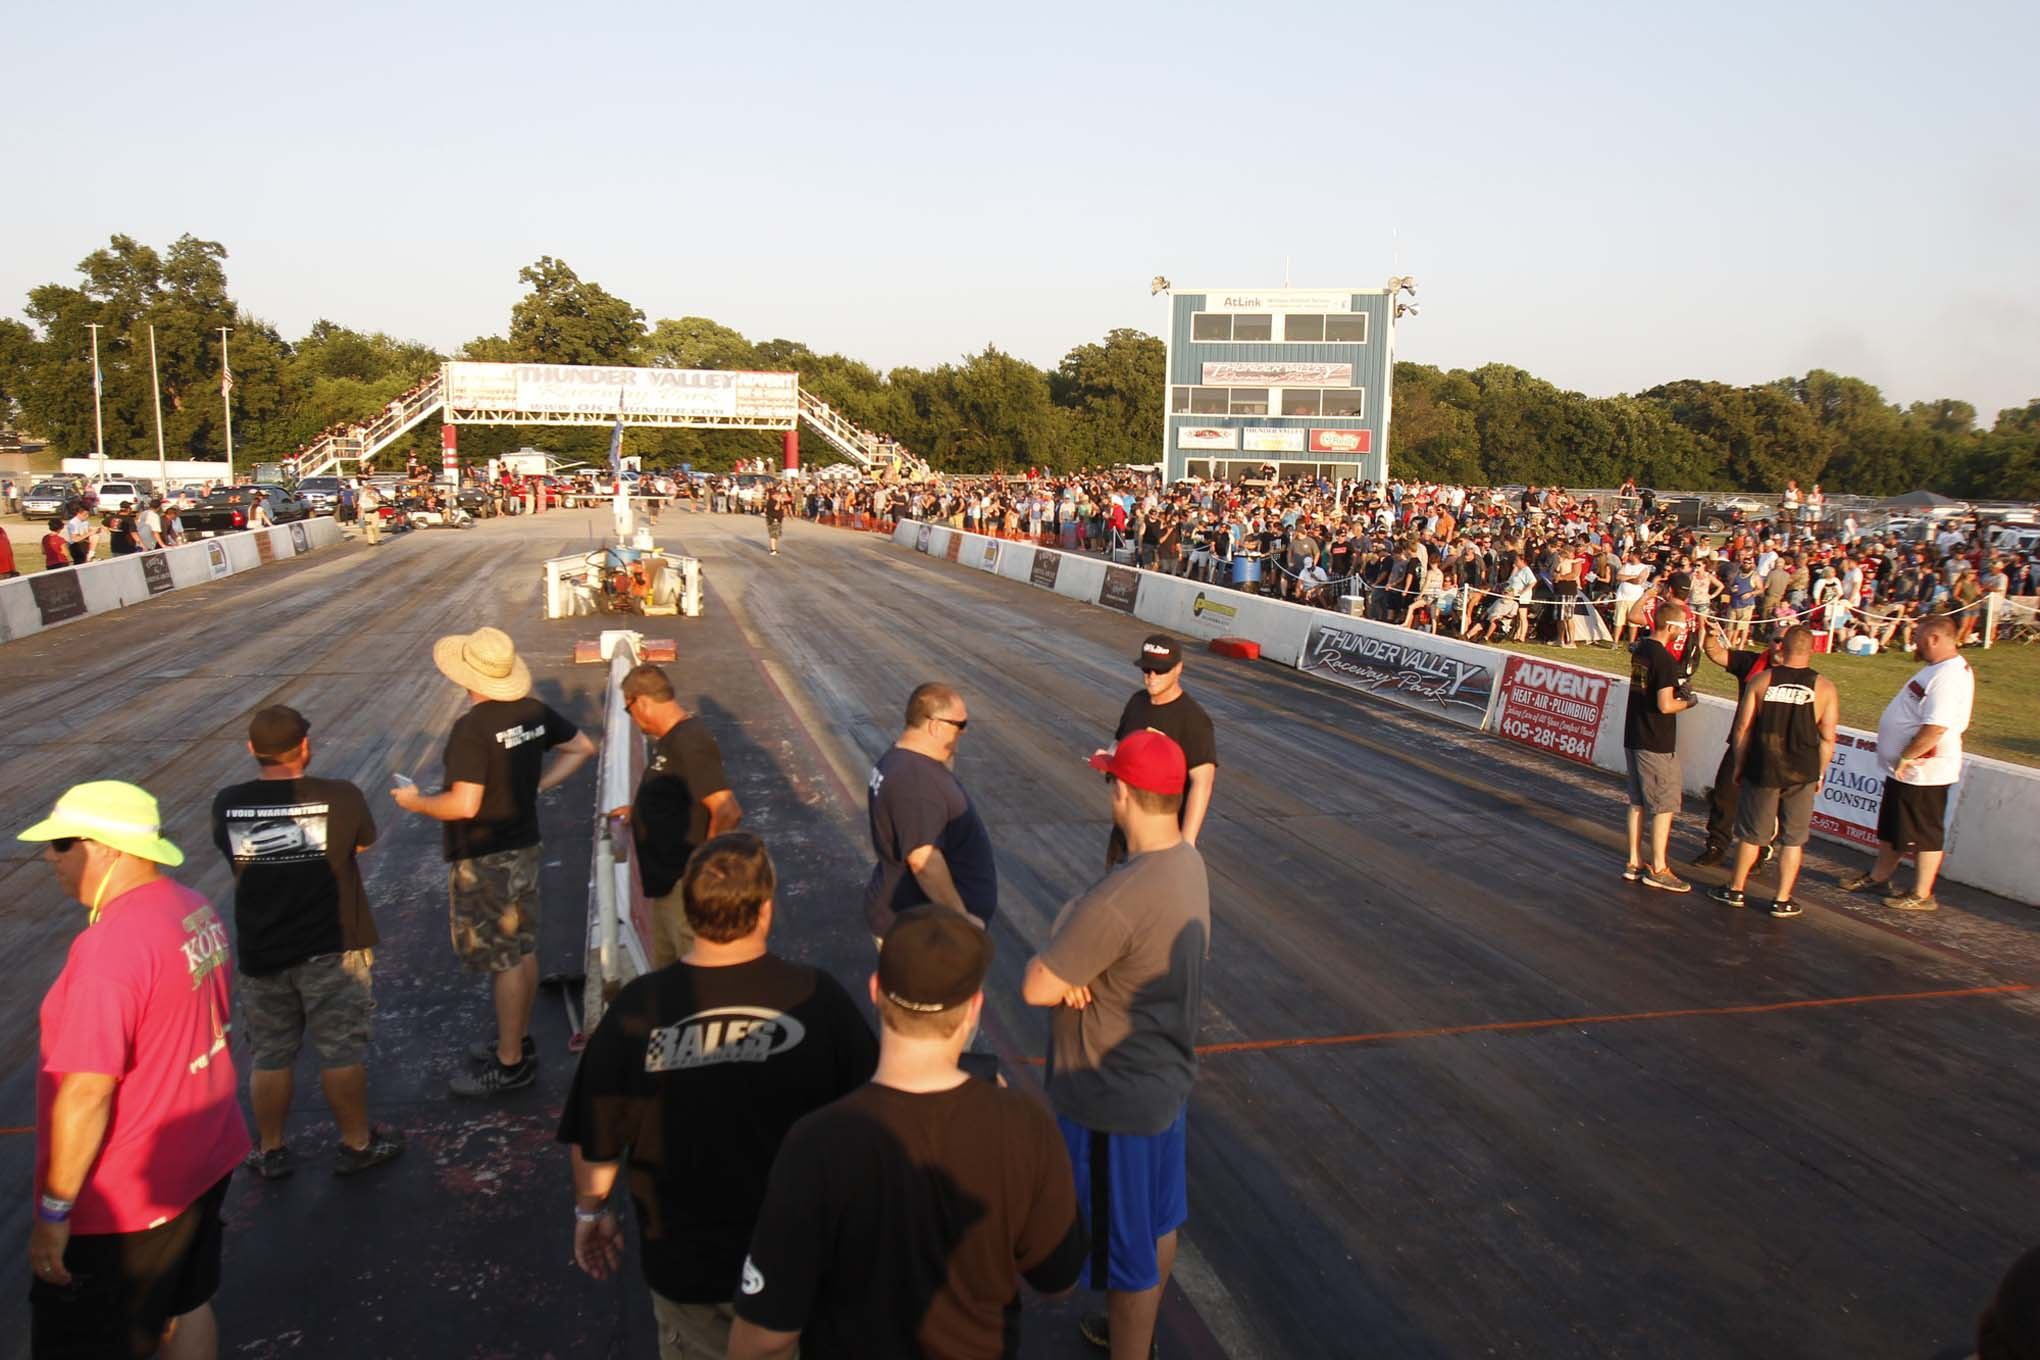 Spectator turnout was impressive for both days of the event. Also note that the starting line for Outlaw Armageddon was not at the track's starting line, adding to the street-race vibe that's becoming more and more popular.